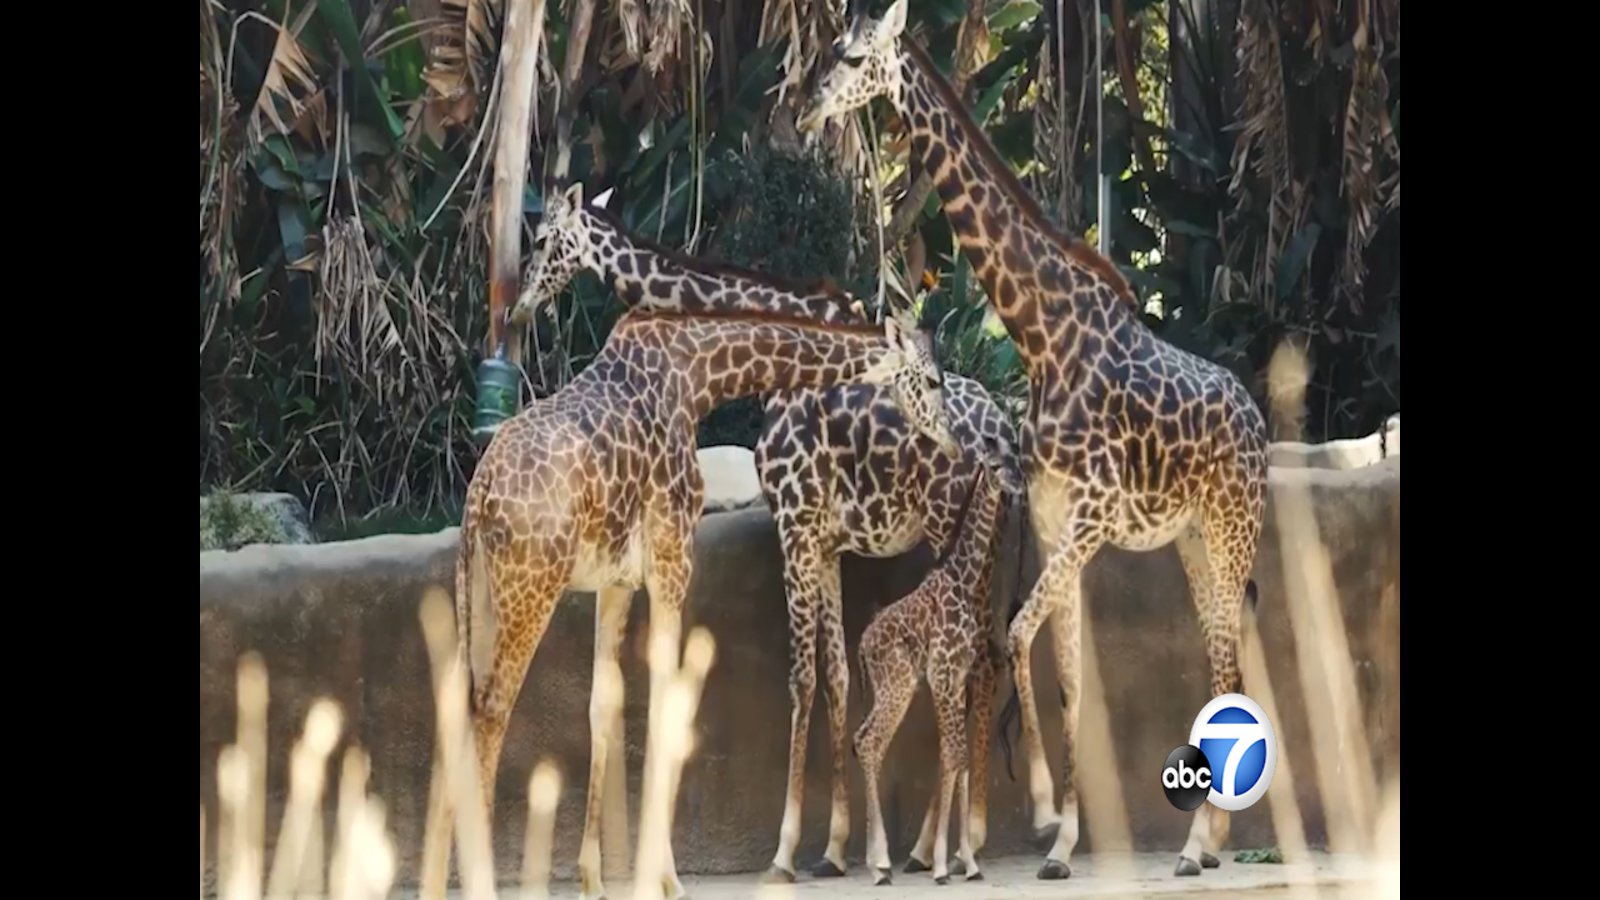 Animals at the LA Zoo are missing human visitors amid coronavirus outbreak